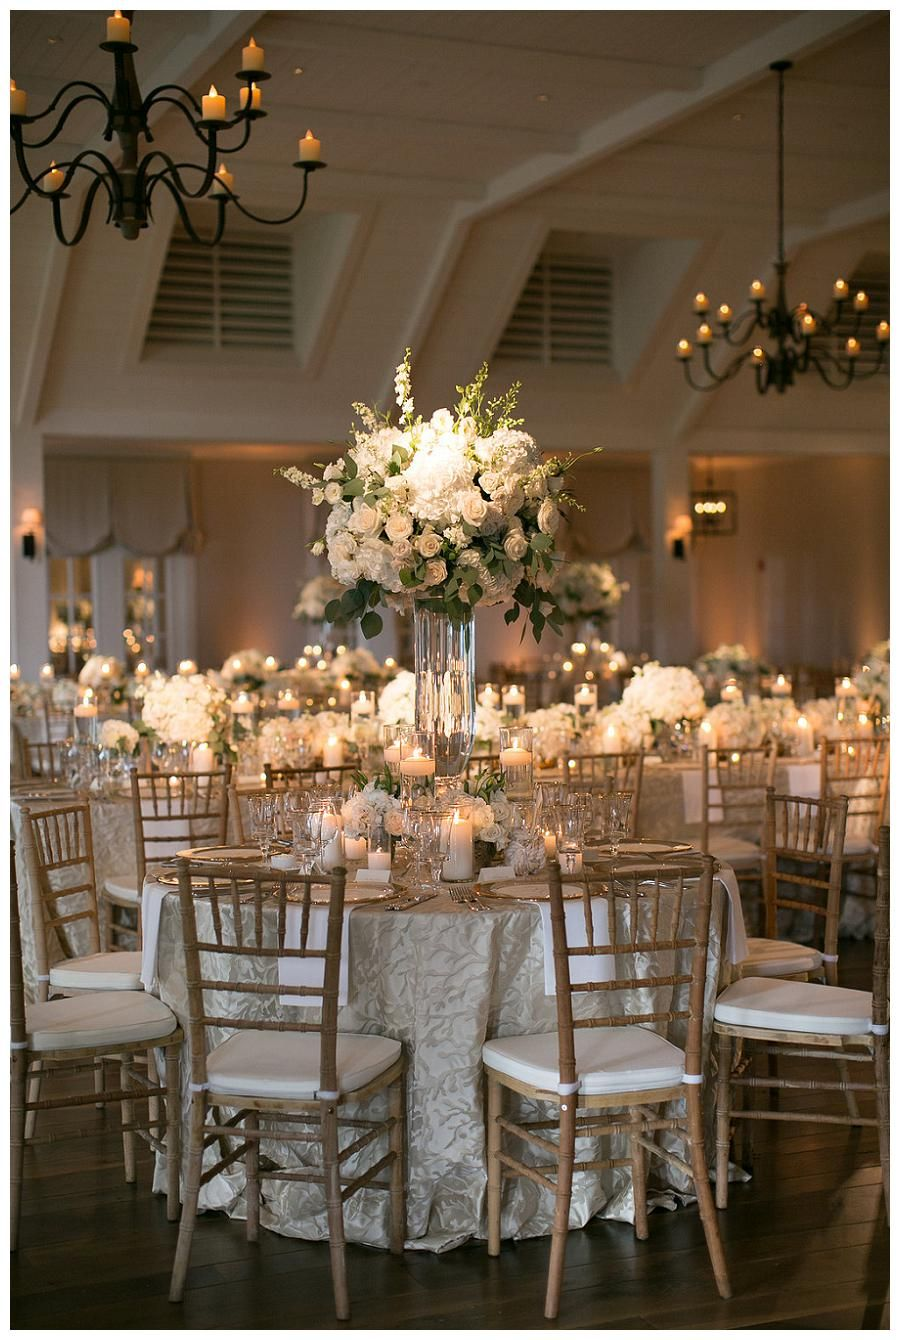 Wedding dinner decoration ideas   White Wedding Decoration Ideas  Floating candles Glass vessel